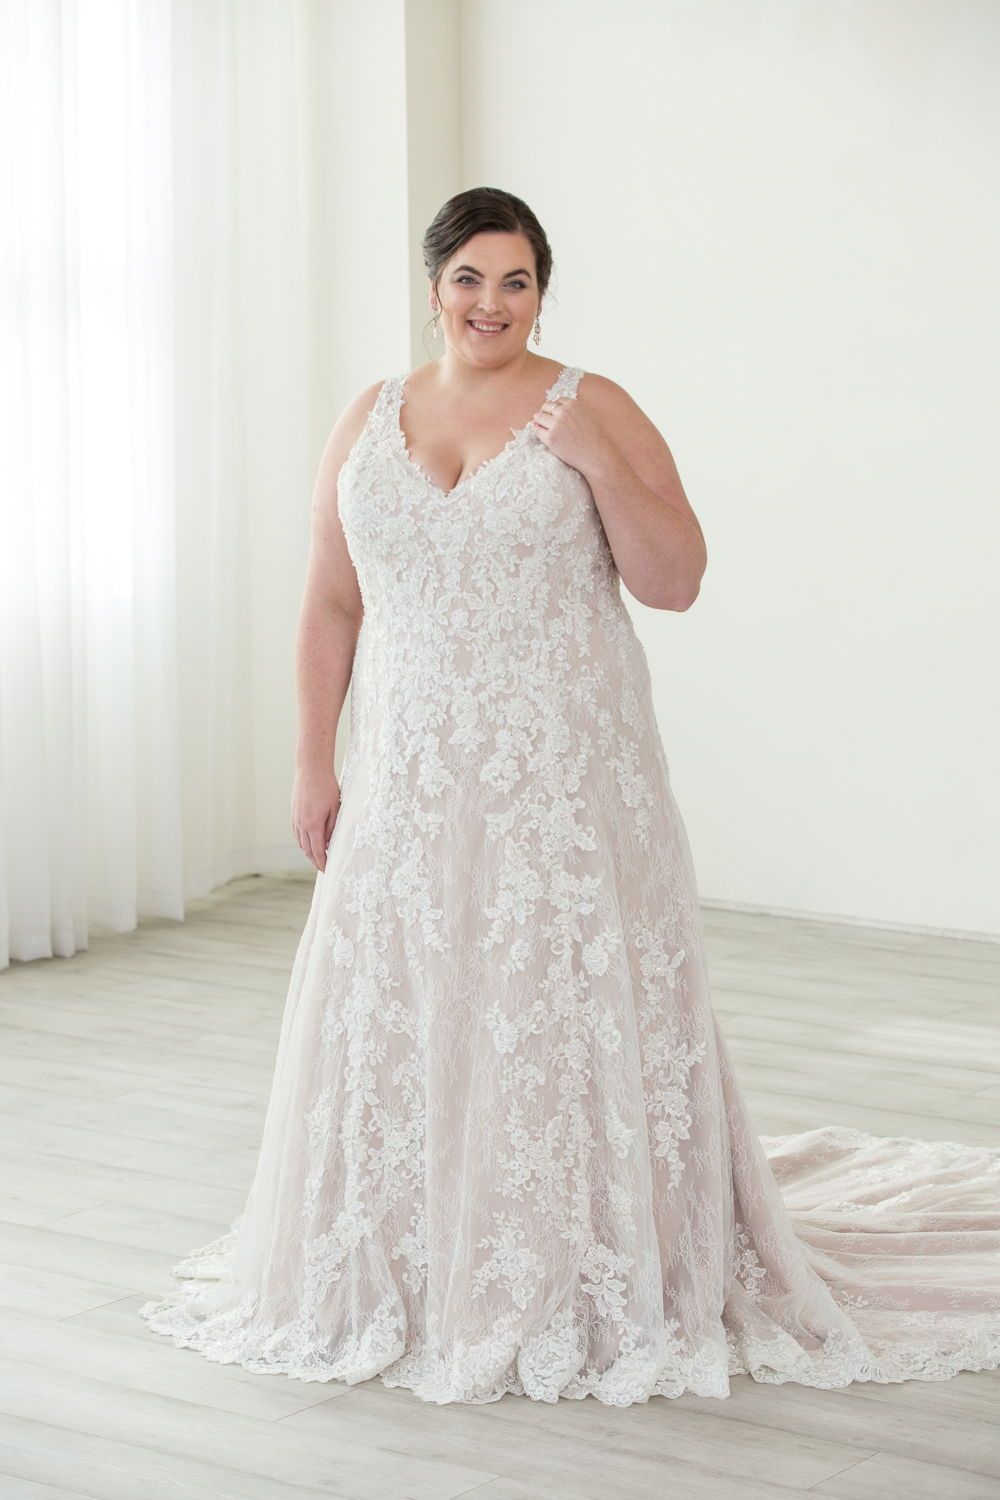 1d21332e73ea Plus Size wedding dress - A-line Justin Alexander wedding gown. Portland,  OR bridal boutique featuring gowns in all shapes and sizes.